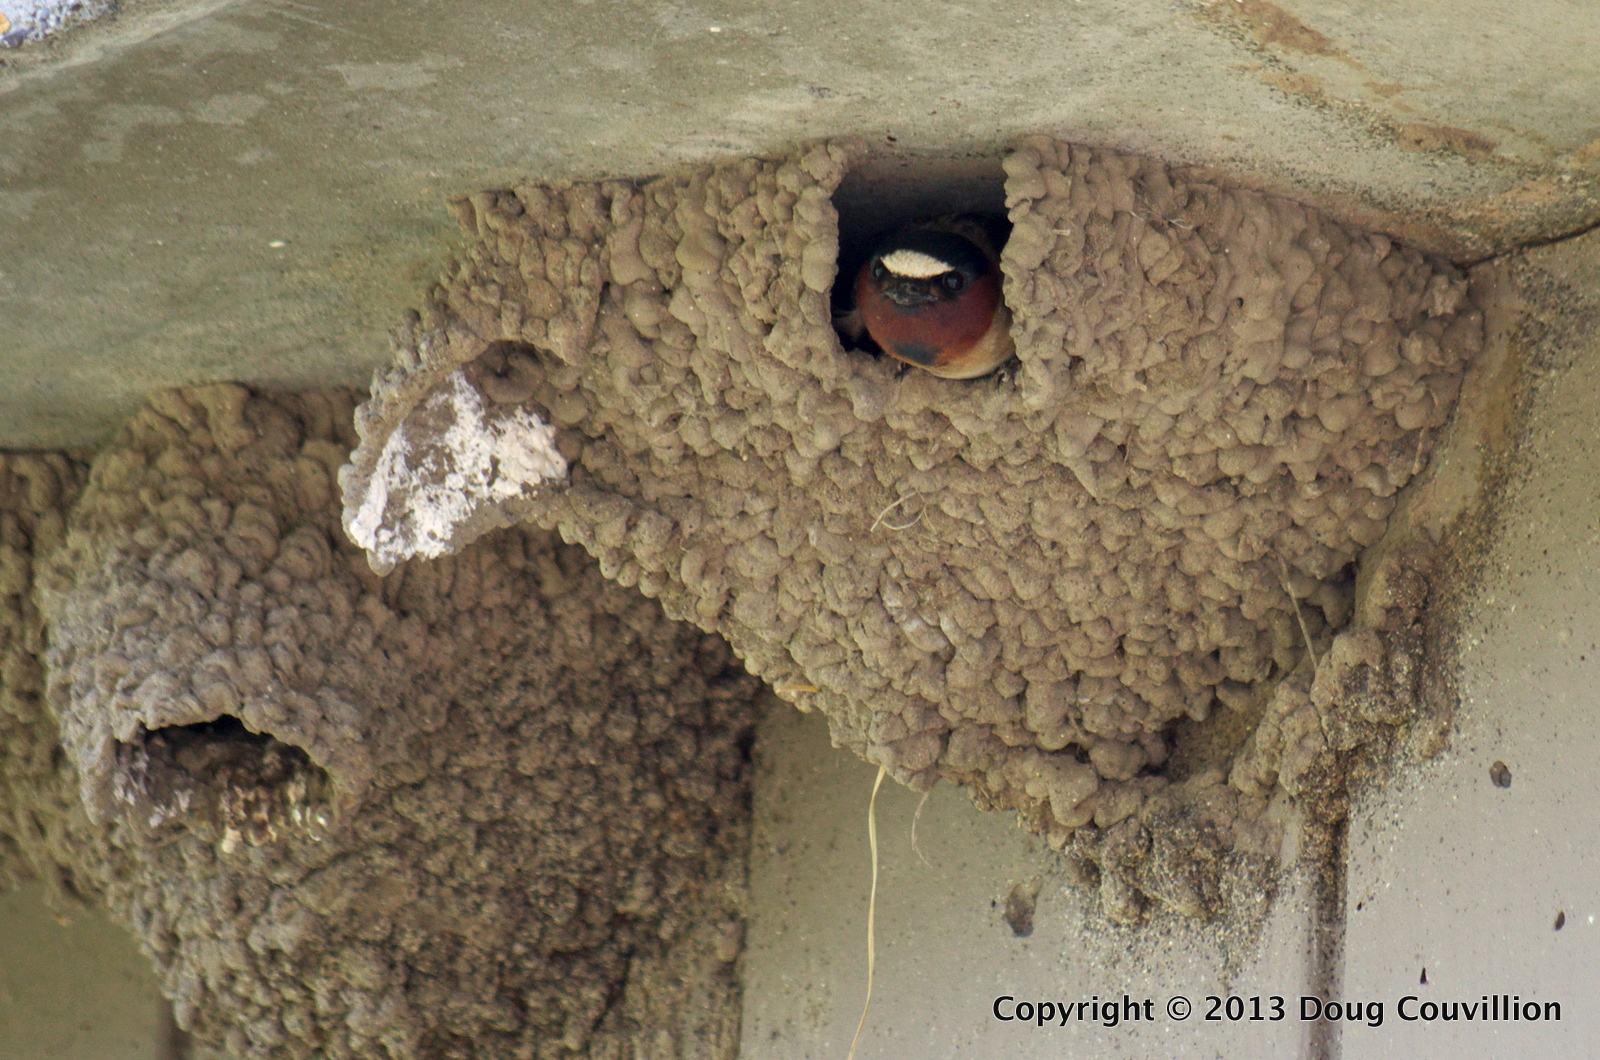 photograph of Cliff Swallow nests under the eaves of a building in Yellowstone National Park